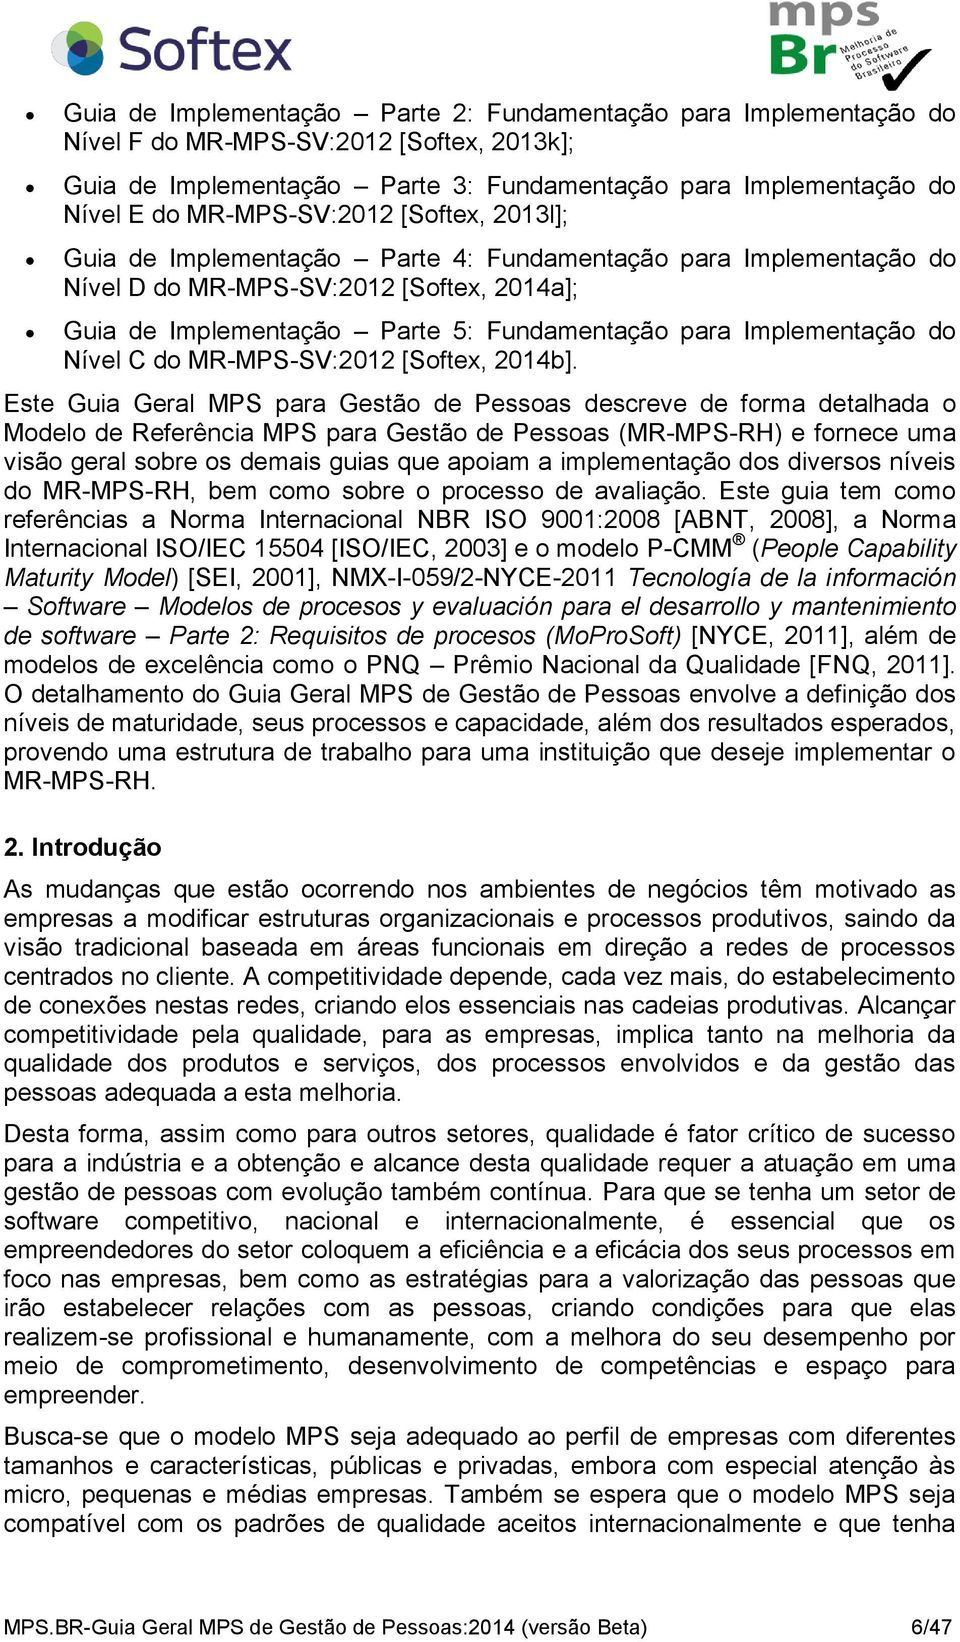 Implementação do Nível C do MR-MPS-SV:2012 [Softex, 2014b].